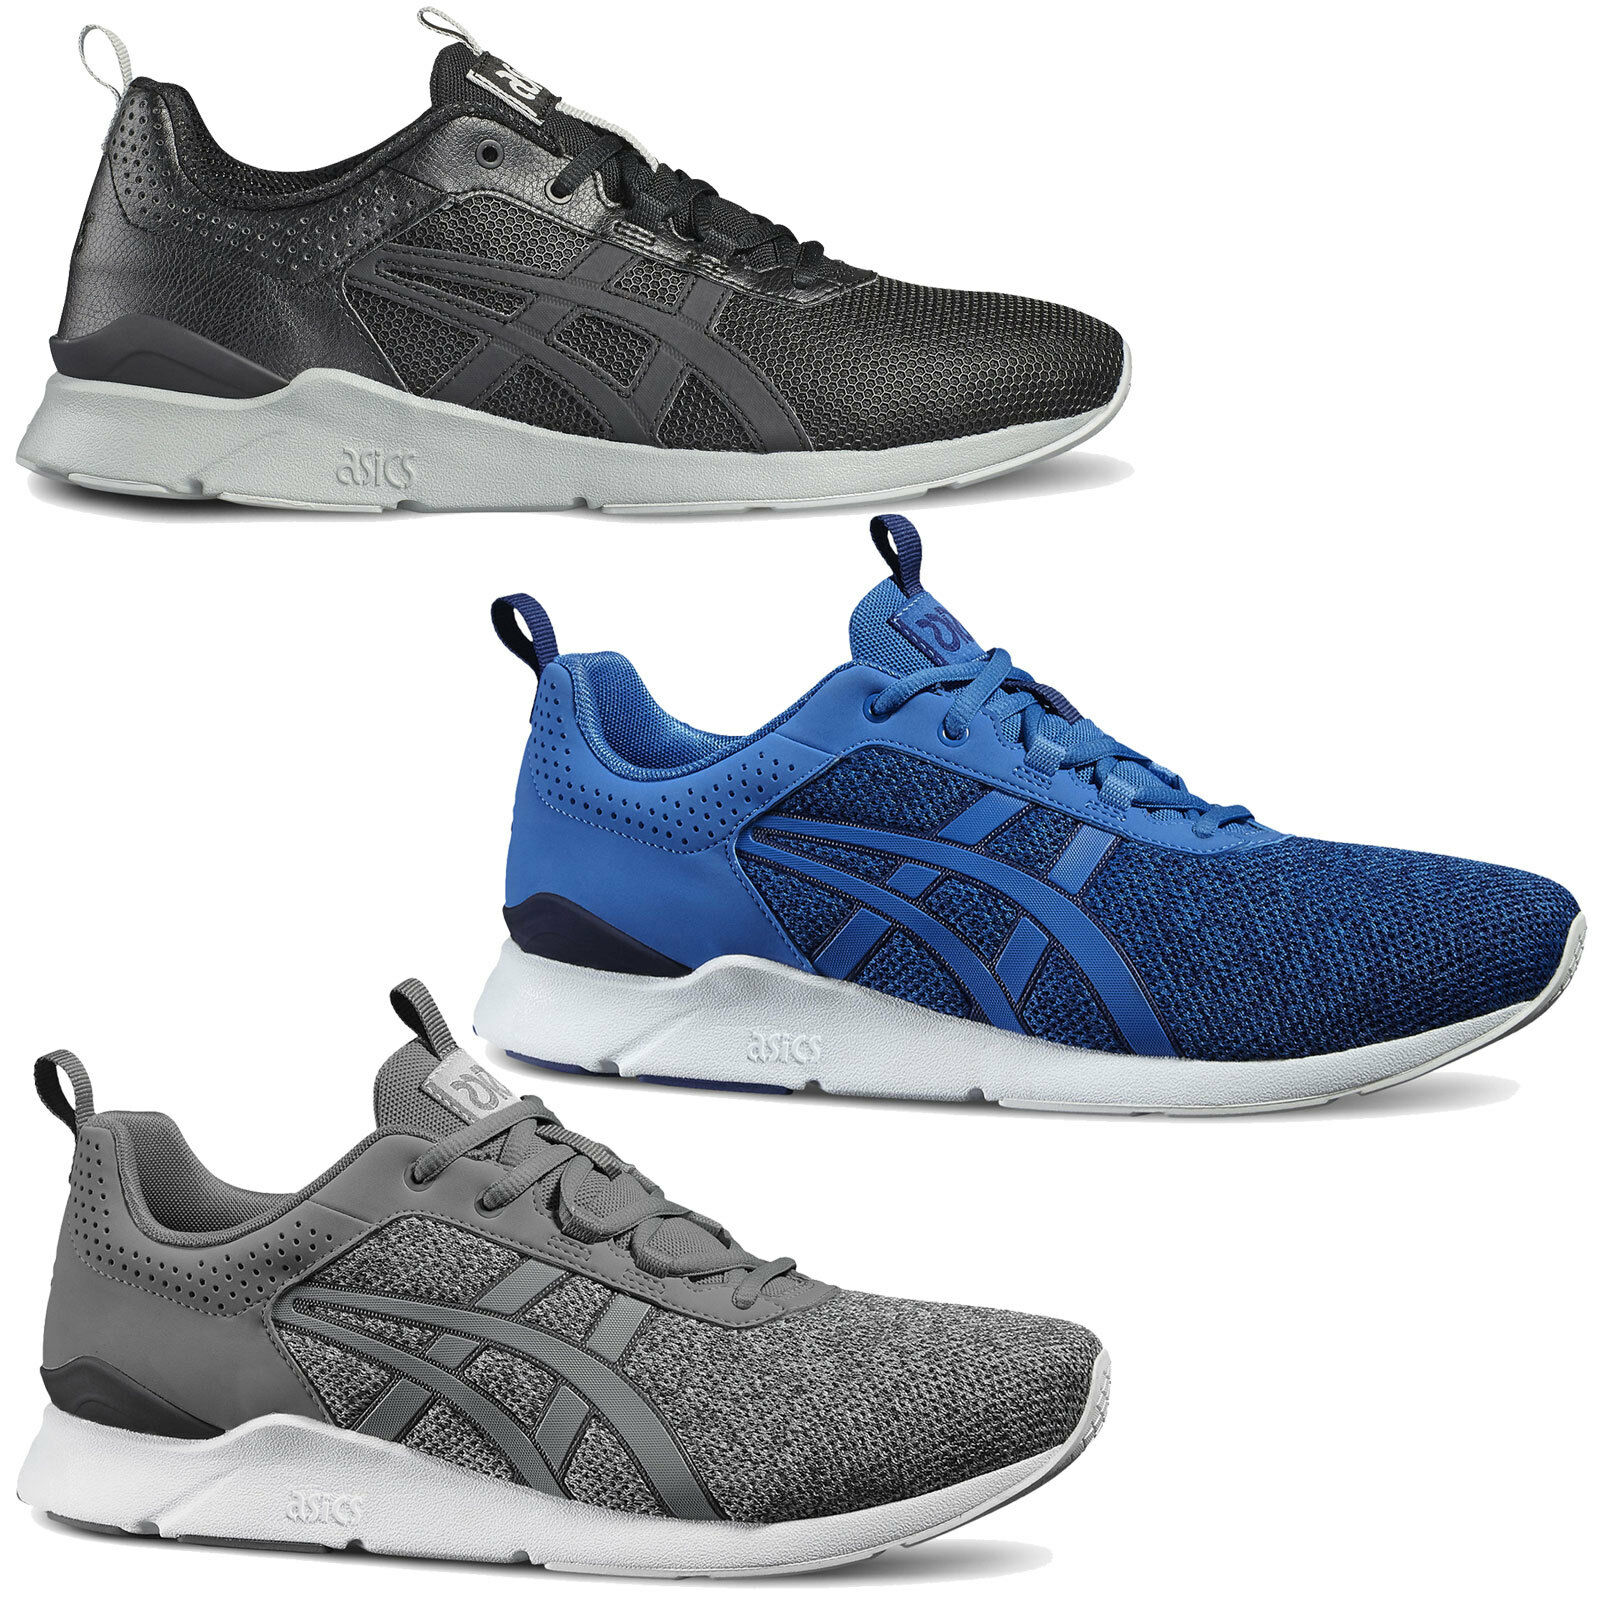 Asics Tiger Gel-Lyte Runner Unisex Sneakers Trainers Low shoes Sports shoes